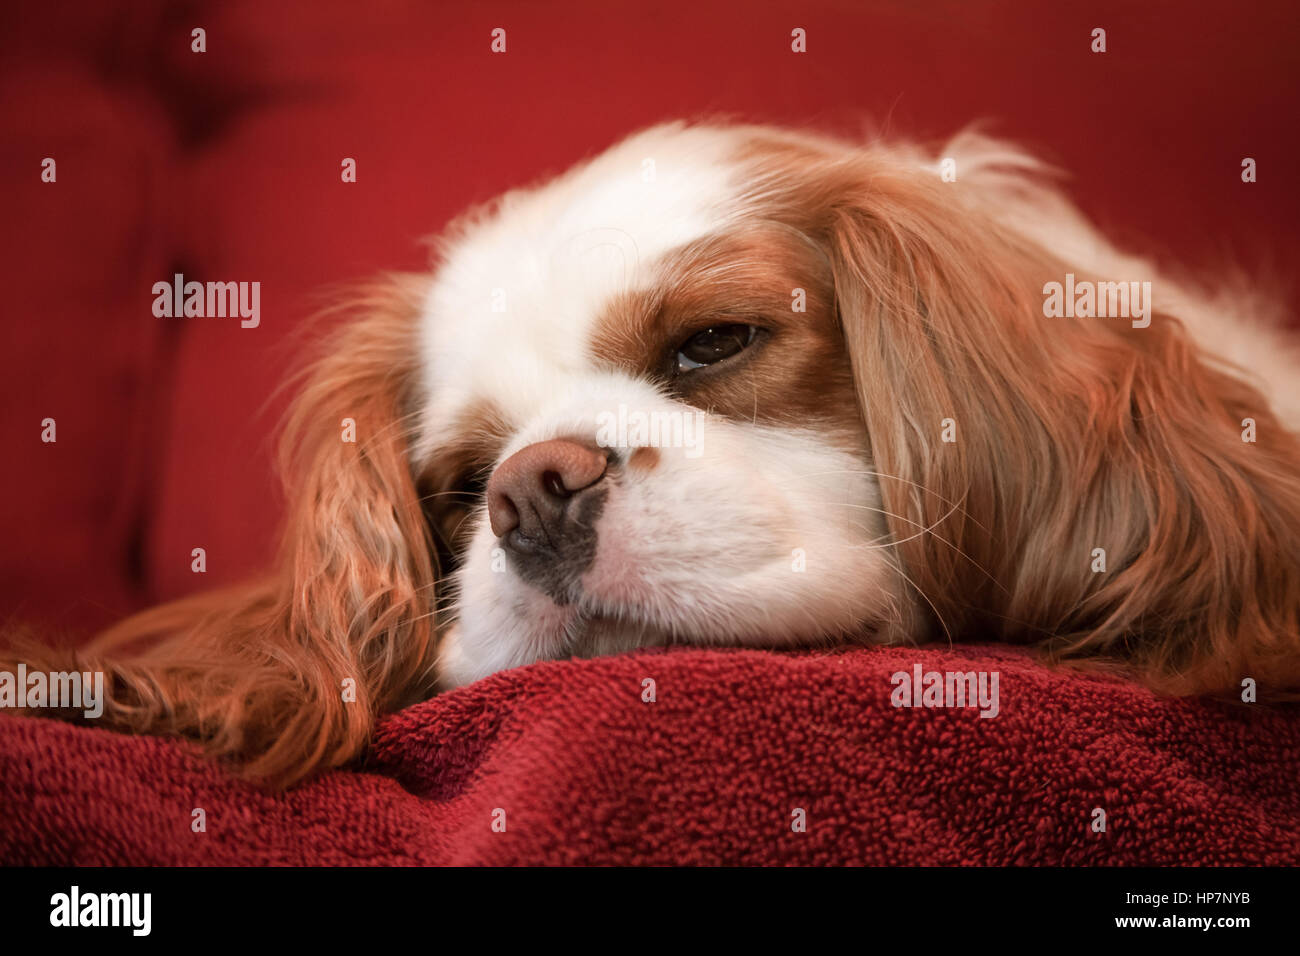 Mandy, a Cavalier King Charles Spaniel, sleeping on a towel-covered couch - Stock Image